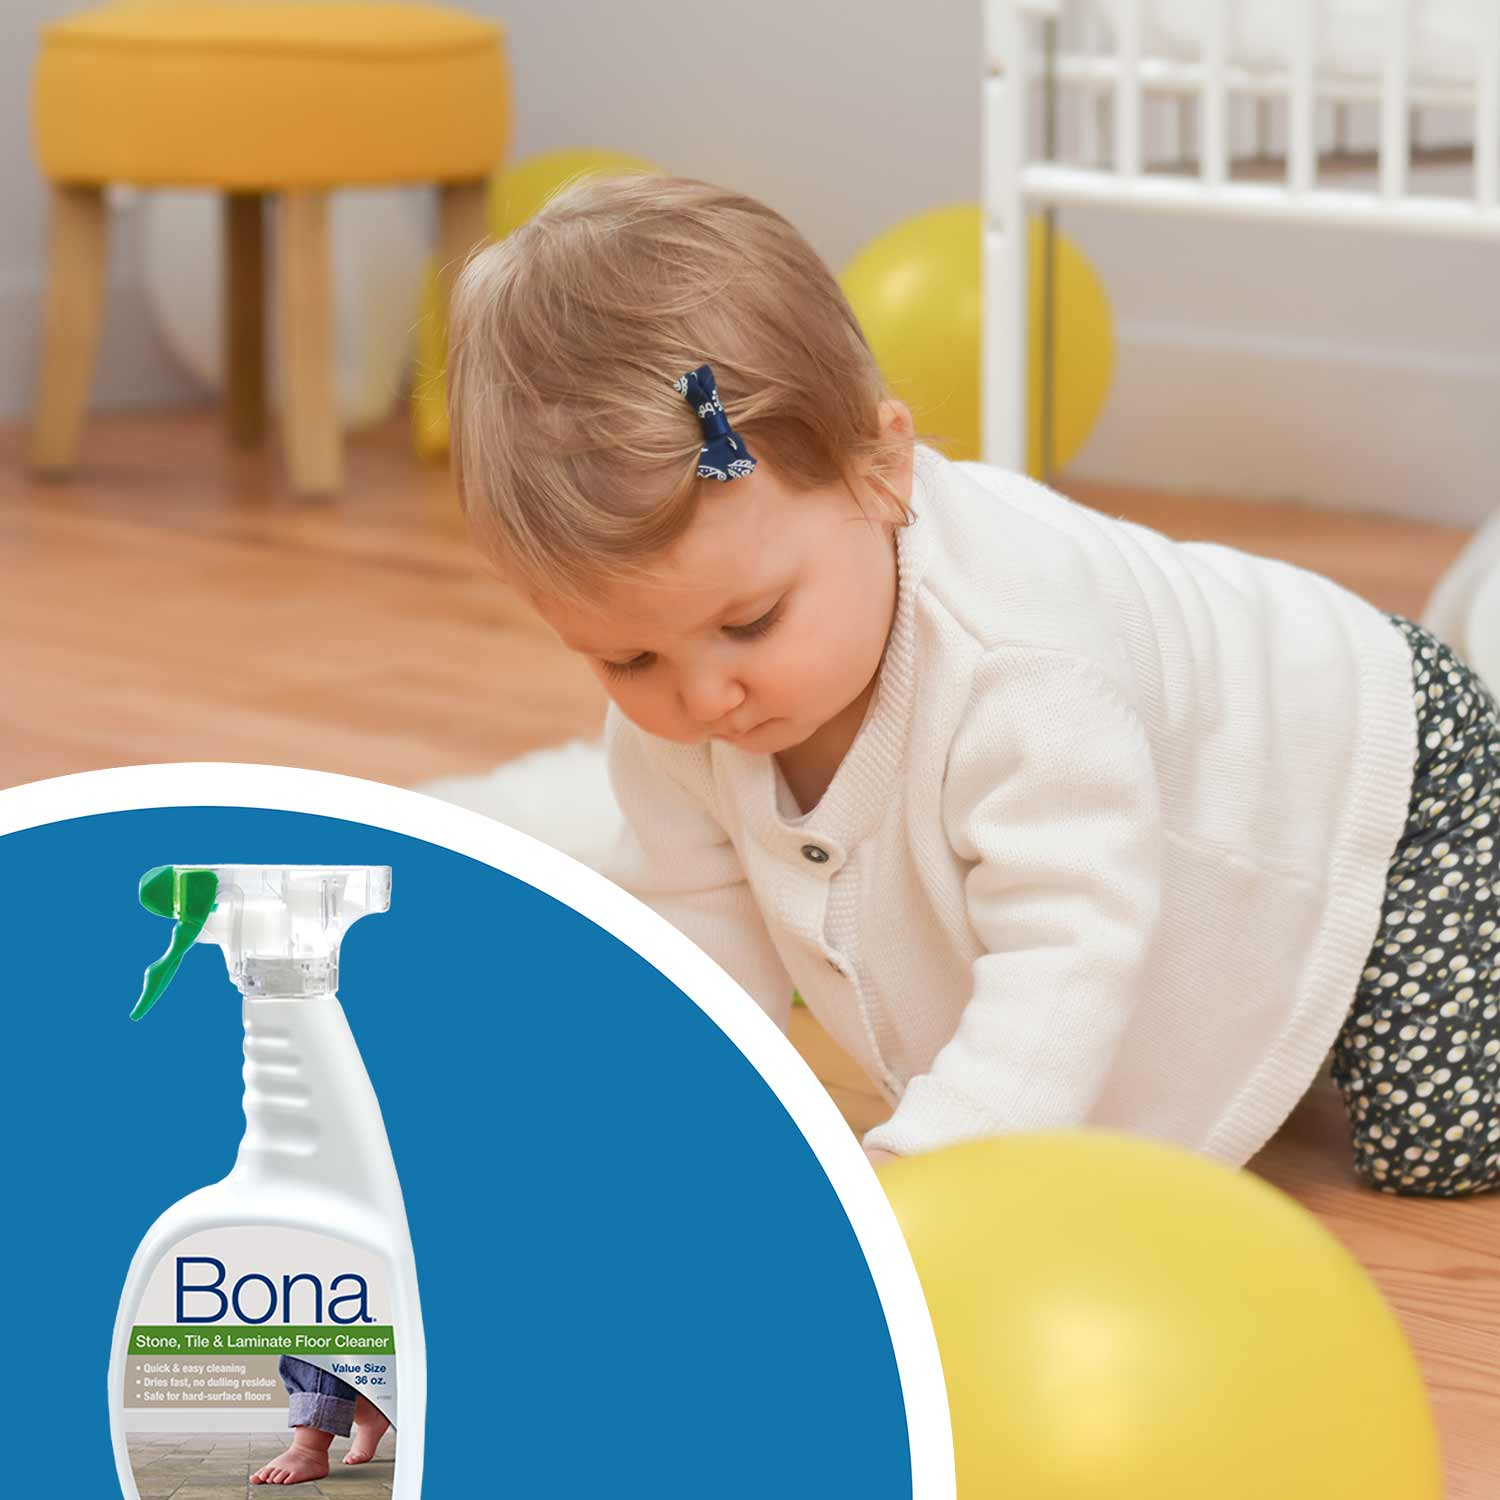 "<p><strong>The <a href=""https://us.bona.com/products/stl-cleaner-36oz.html"">Bona Stone, Tile & Laminate Cleaner </a>is an excellent choice for cleaning luxury vinyl flooring and other hard surface floors. </strong>Safe to use around pets and children, our floor cleaner dries fast and leaves no residue&mdash;the perfect choice when you don&rsquo;t want your floors to get in the way of your life!</p><br/>"